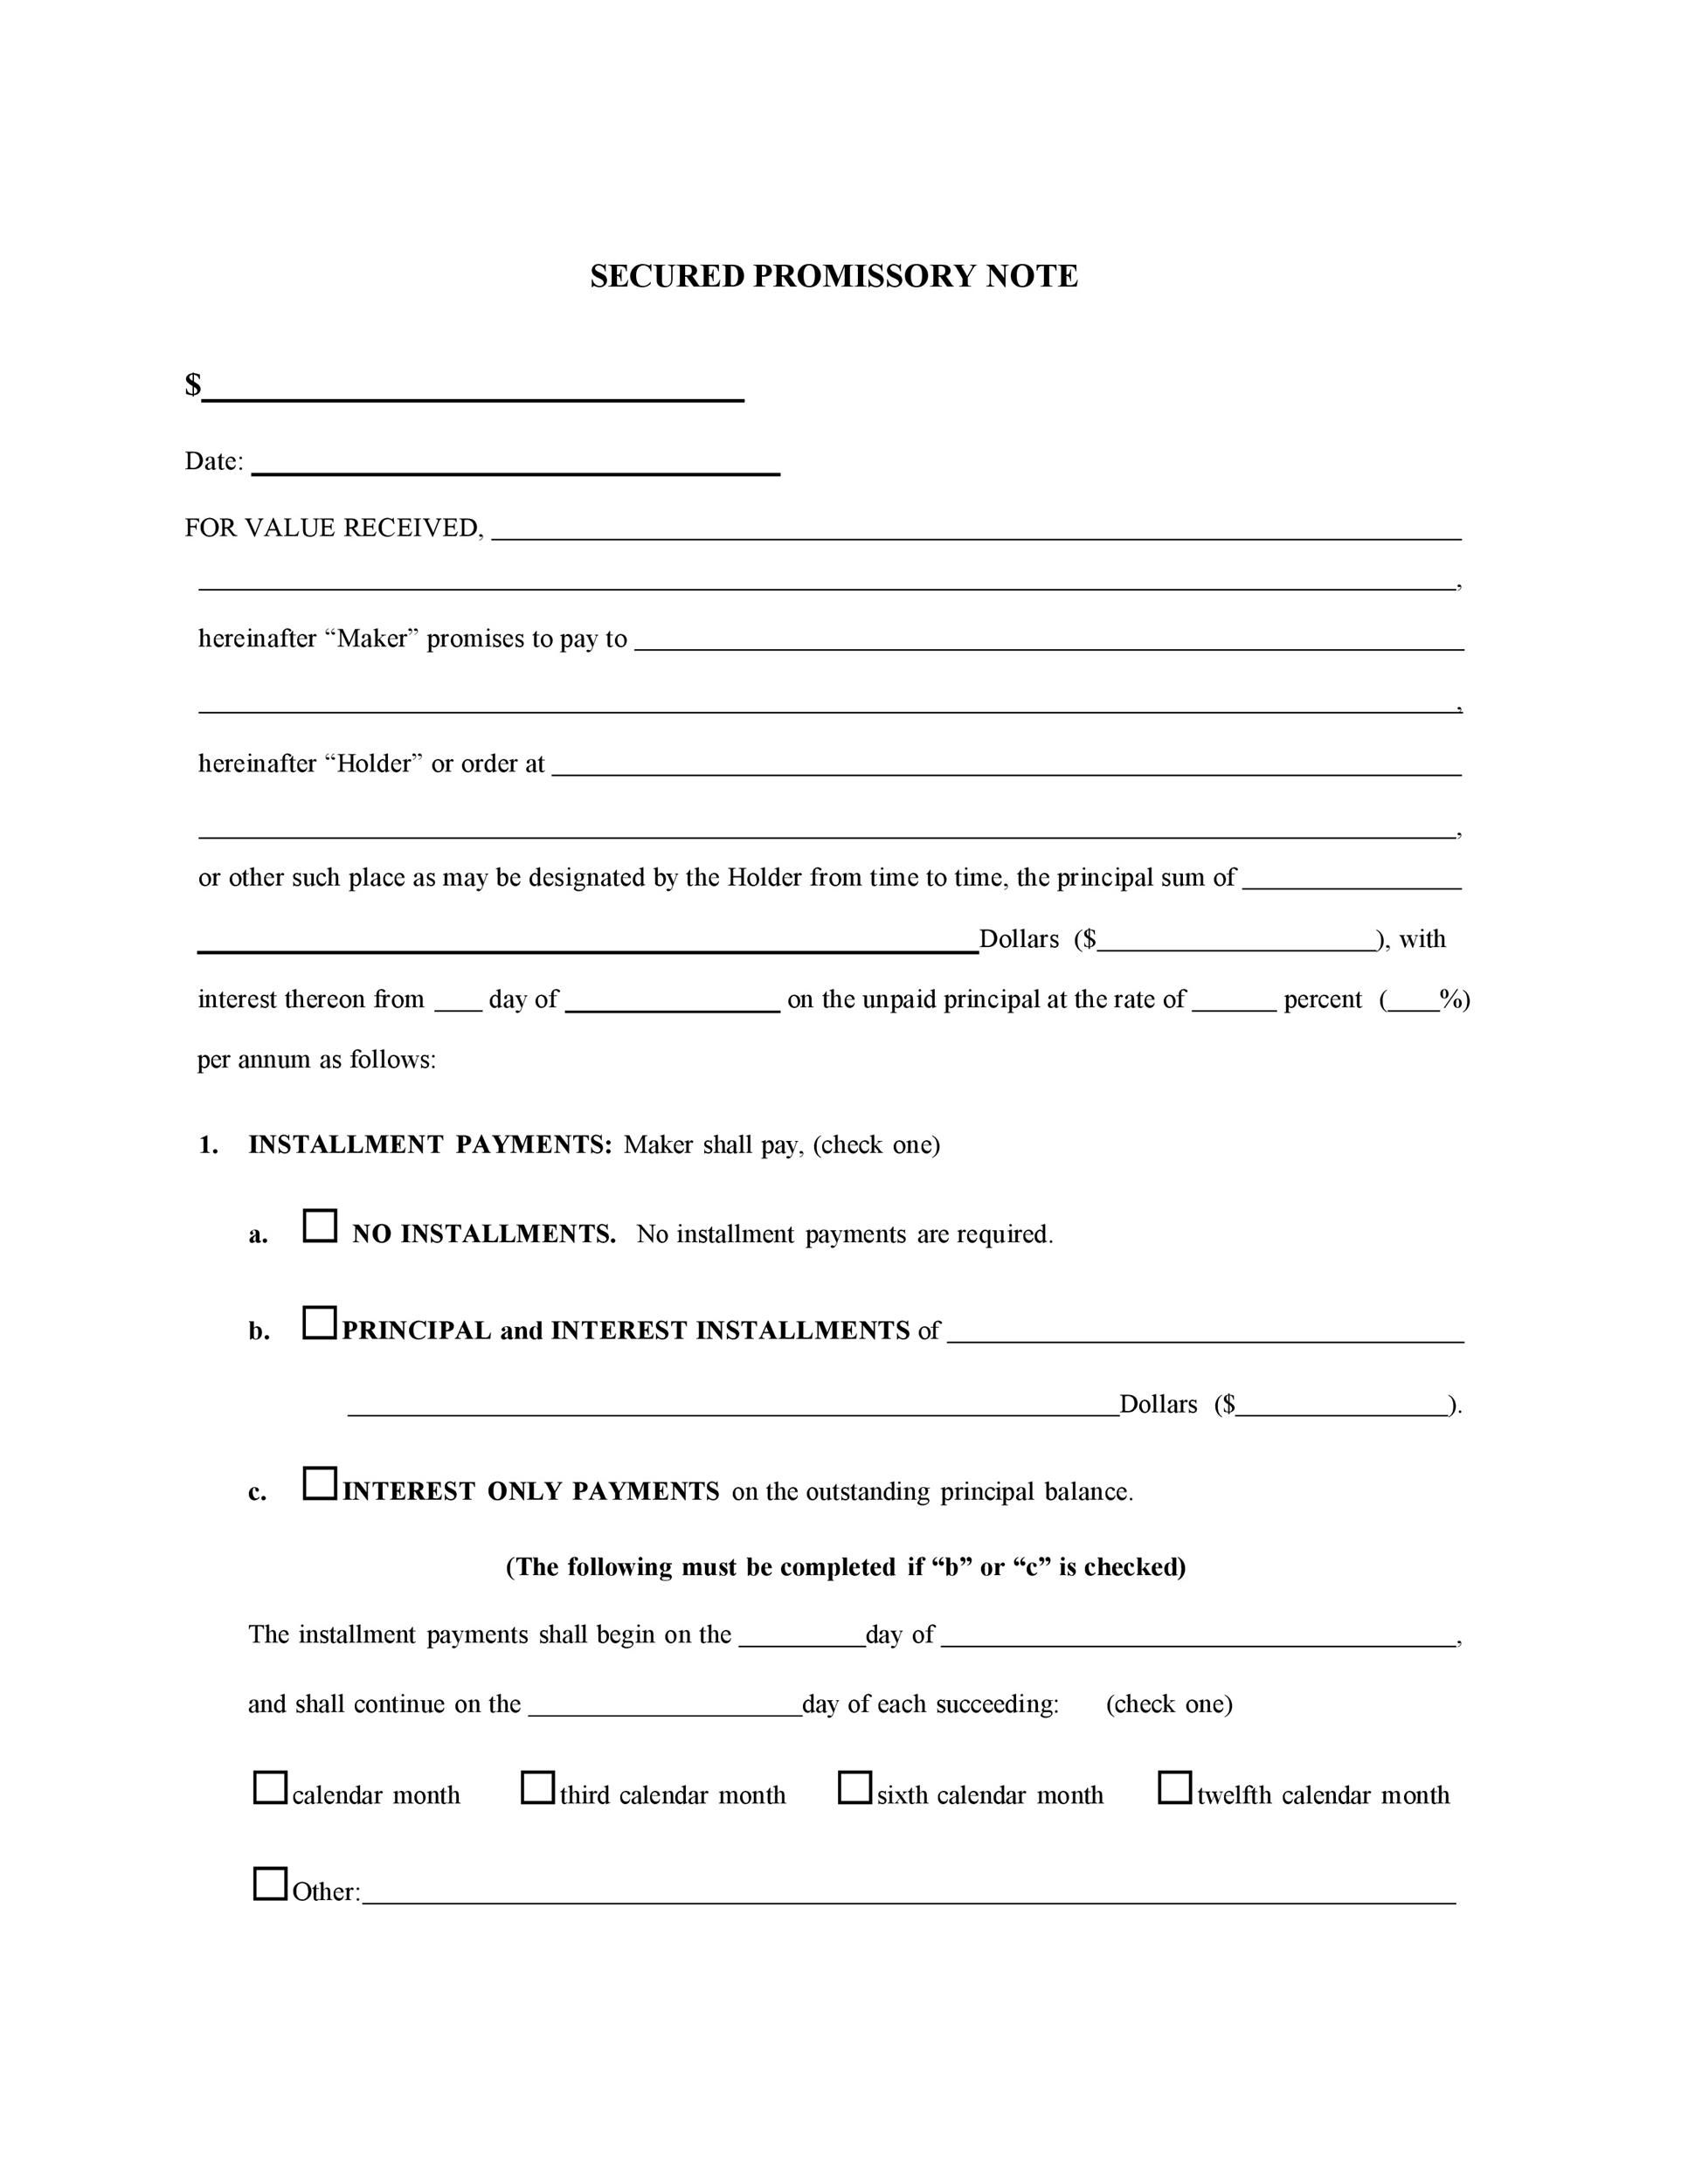 006 Fantastic Loan Promissory Note Template High Resolution  Ppp Form Personal Format StudentFull